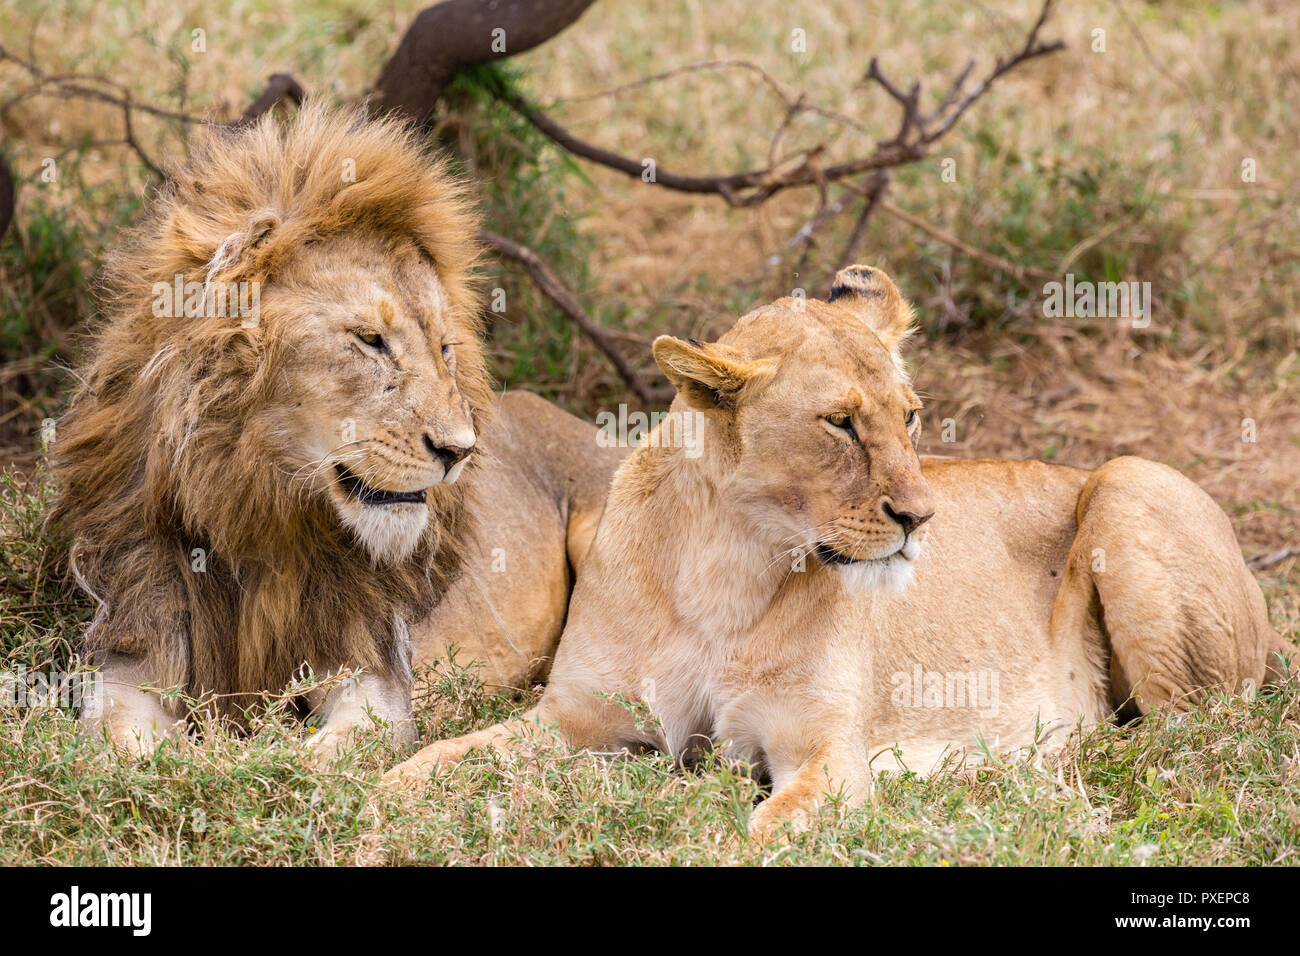 Lions in the Serengeti National Park, Tanzania Stock Photo